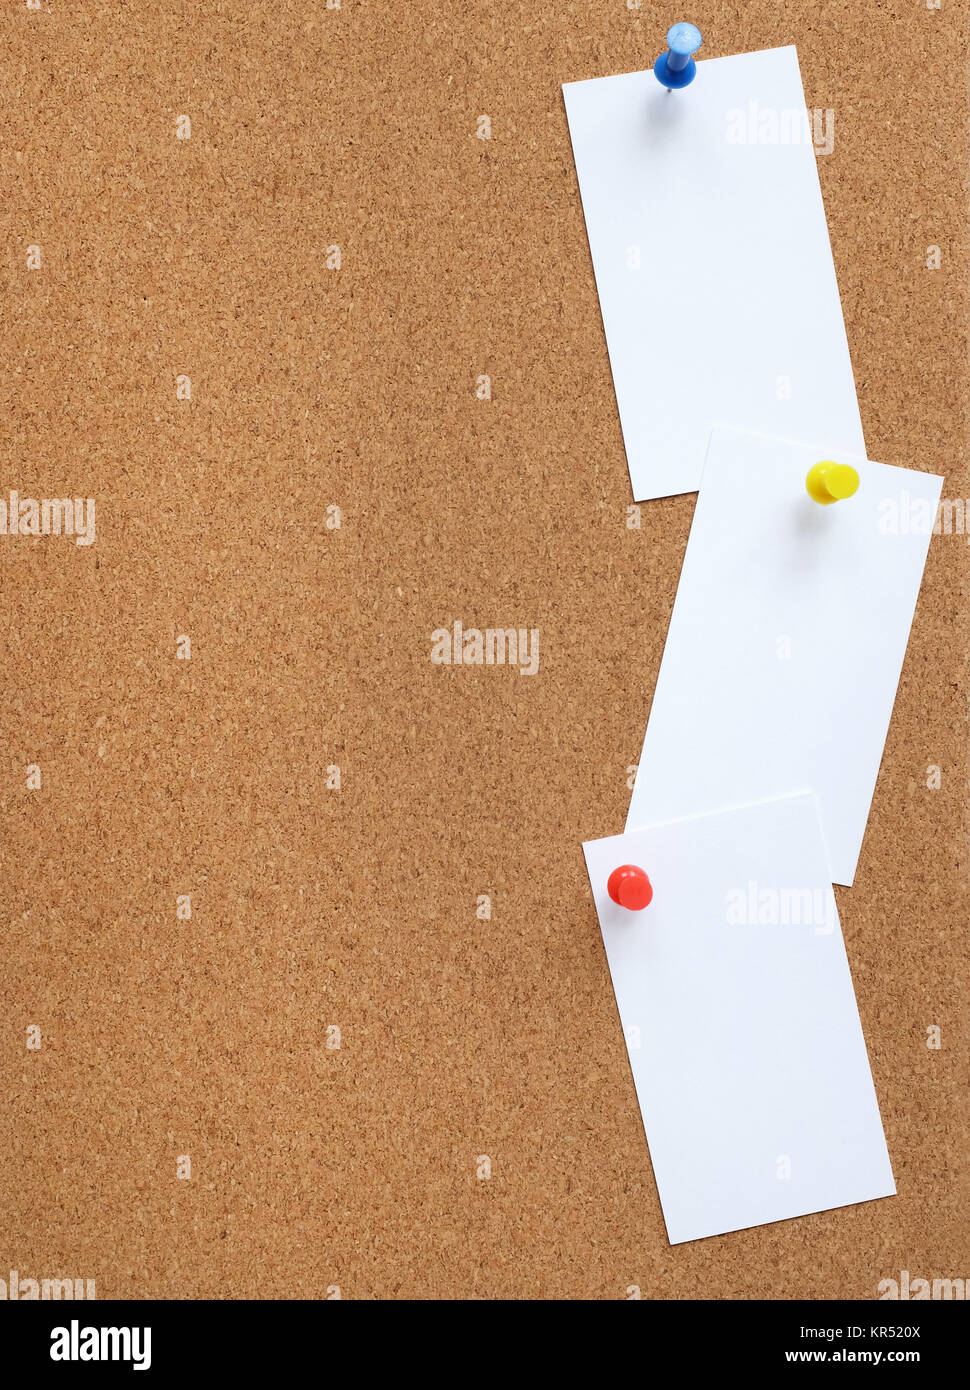 Cork noticeboard with three white cards pinned vertically - Stock Image